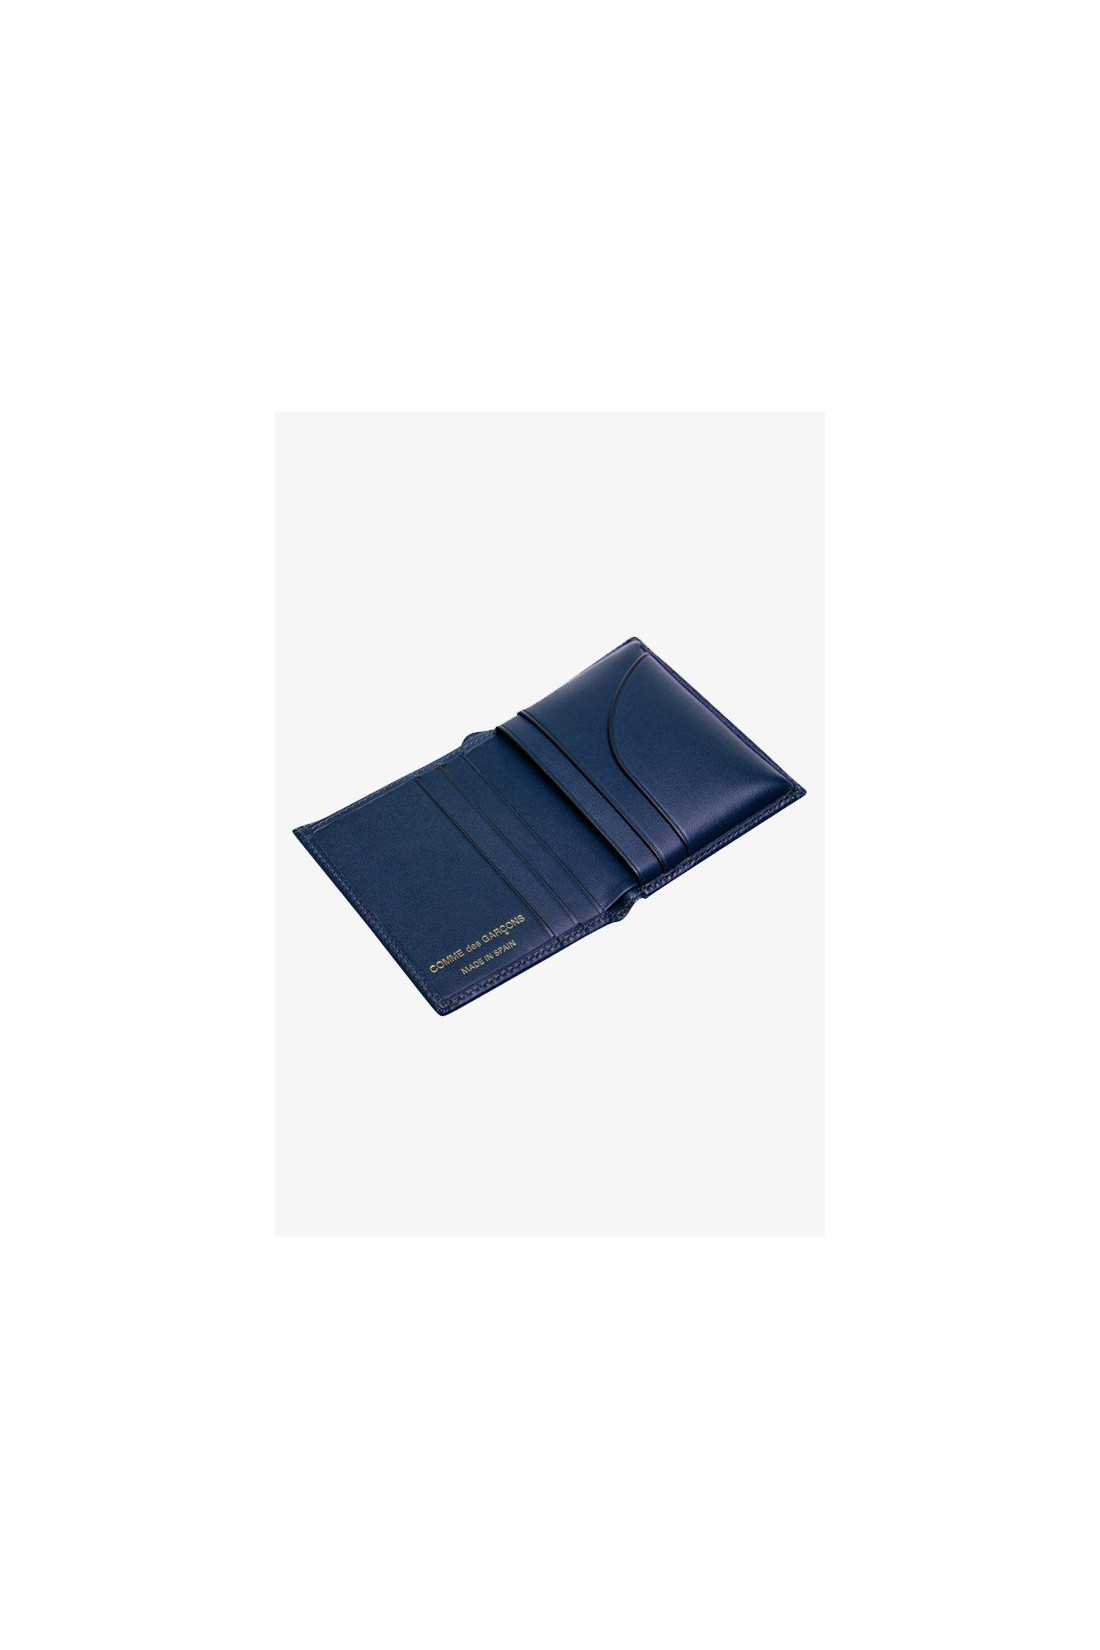 CDG WALLETS / Cdg classic leather sa0641 Navy